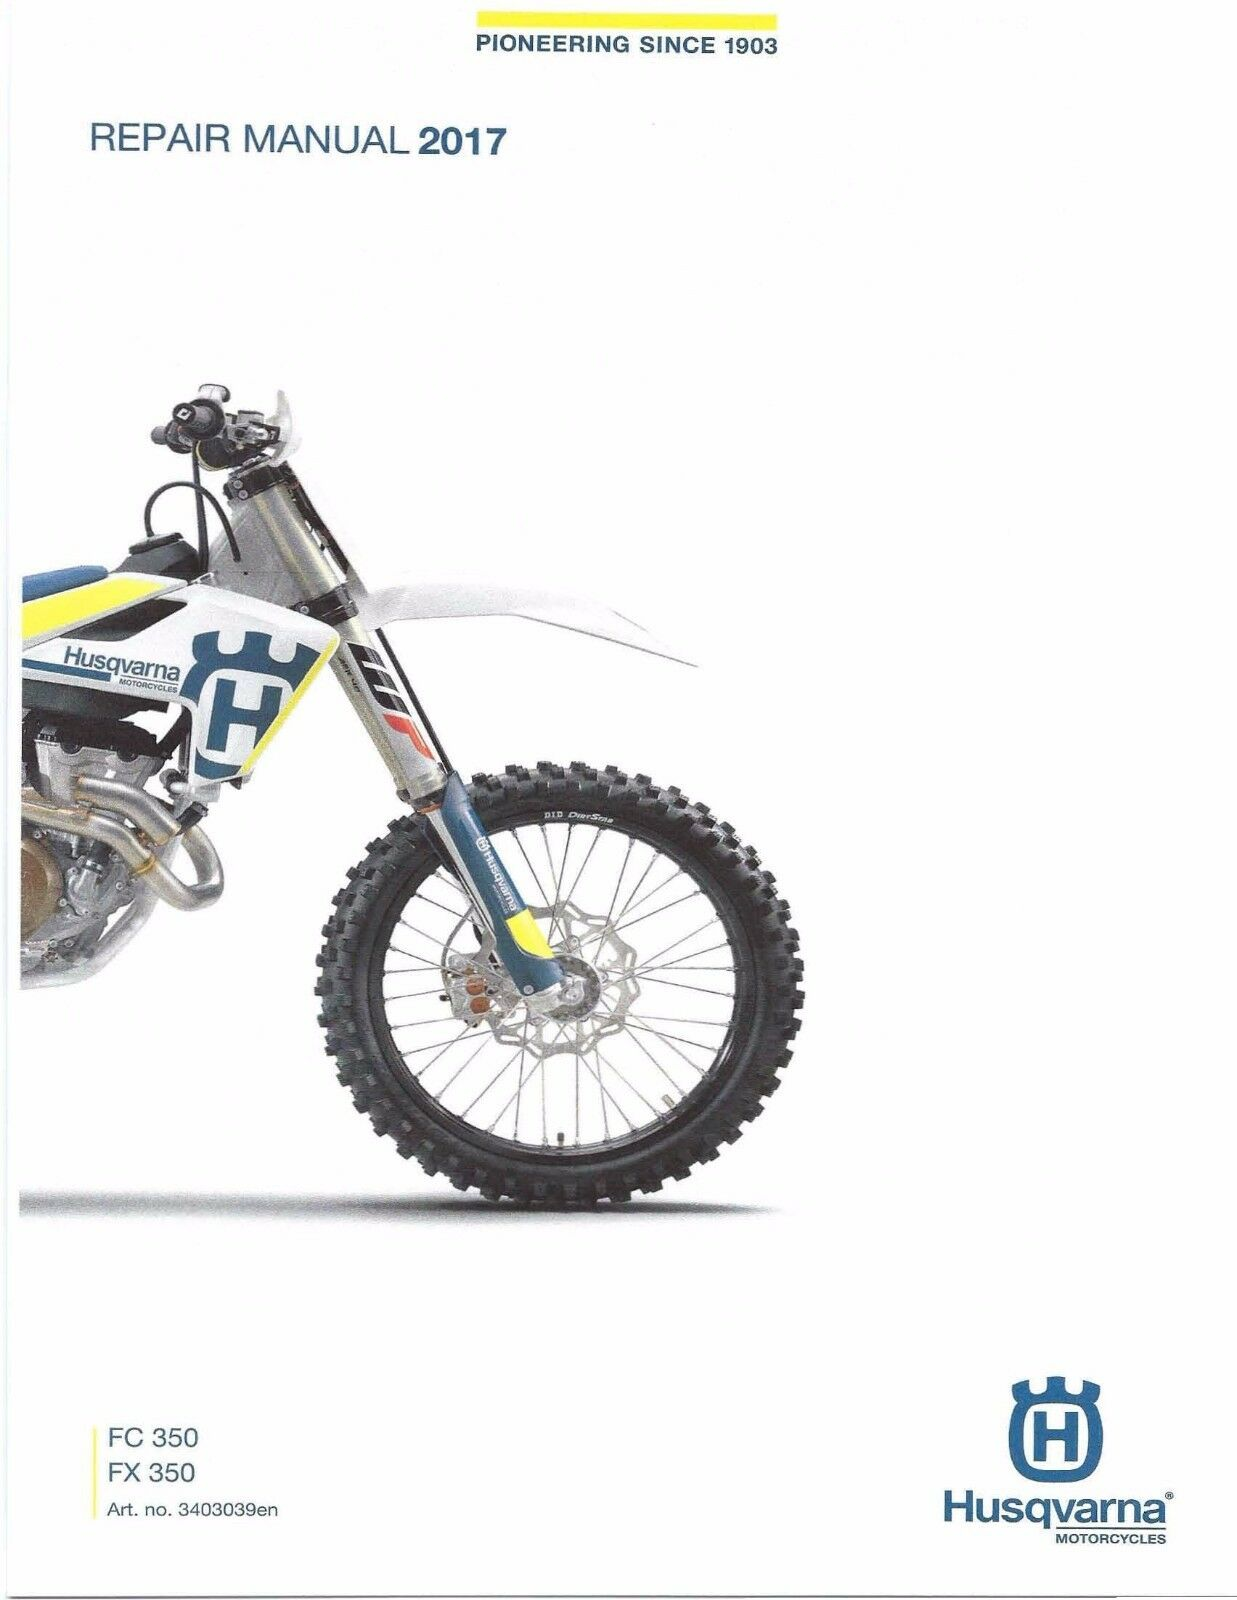 Husqvarna workshop service manual 2017 FC 350 & FX 350 1 of 12FREE Shipping  ...